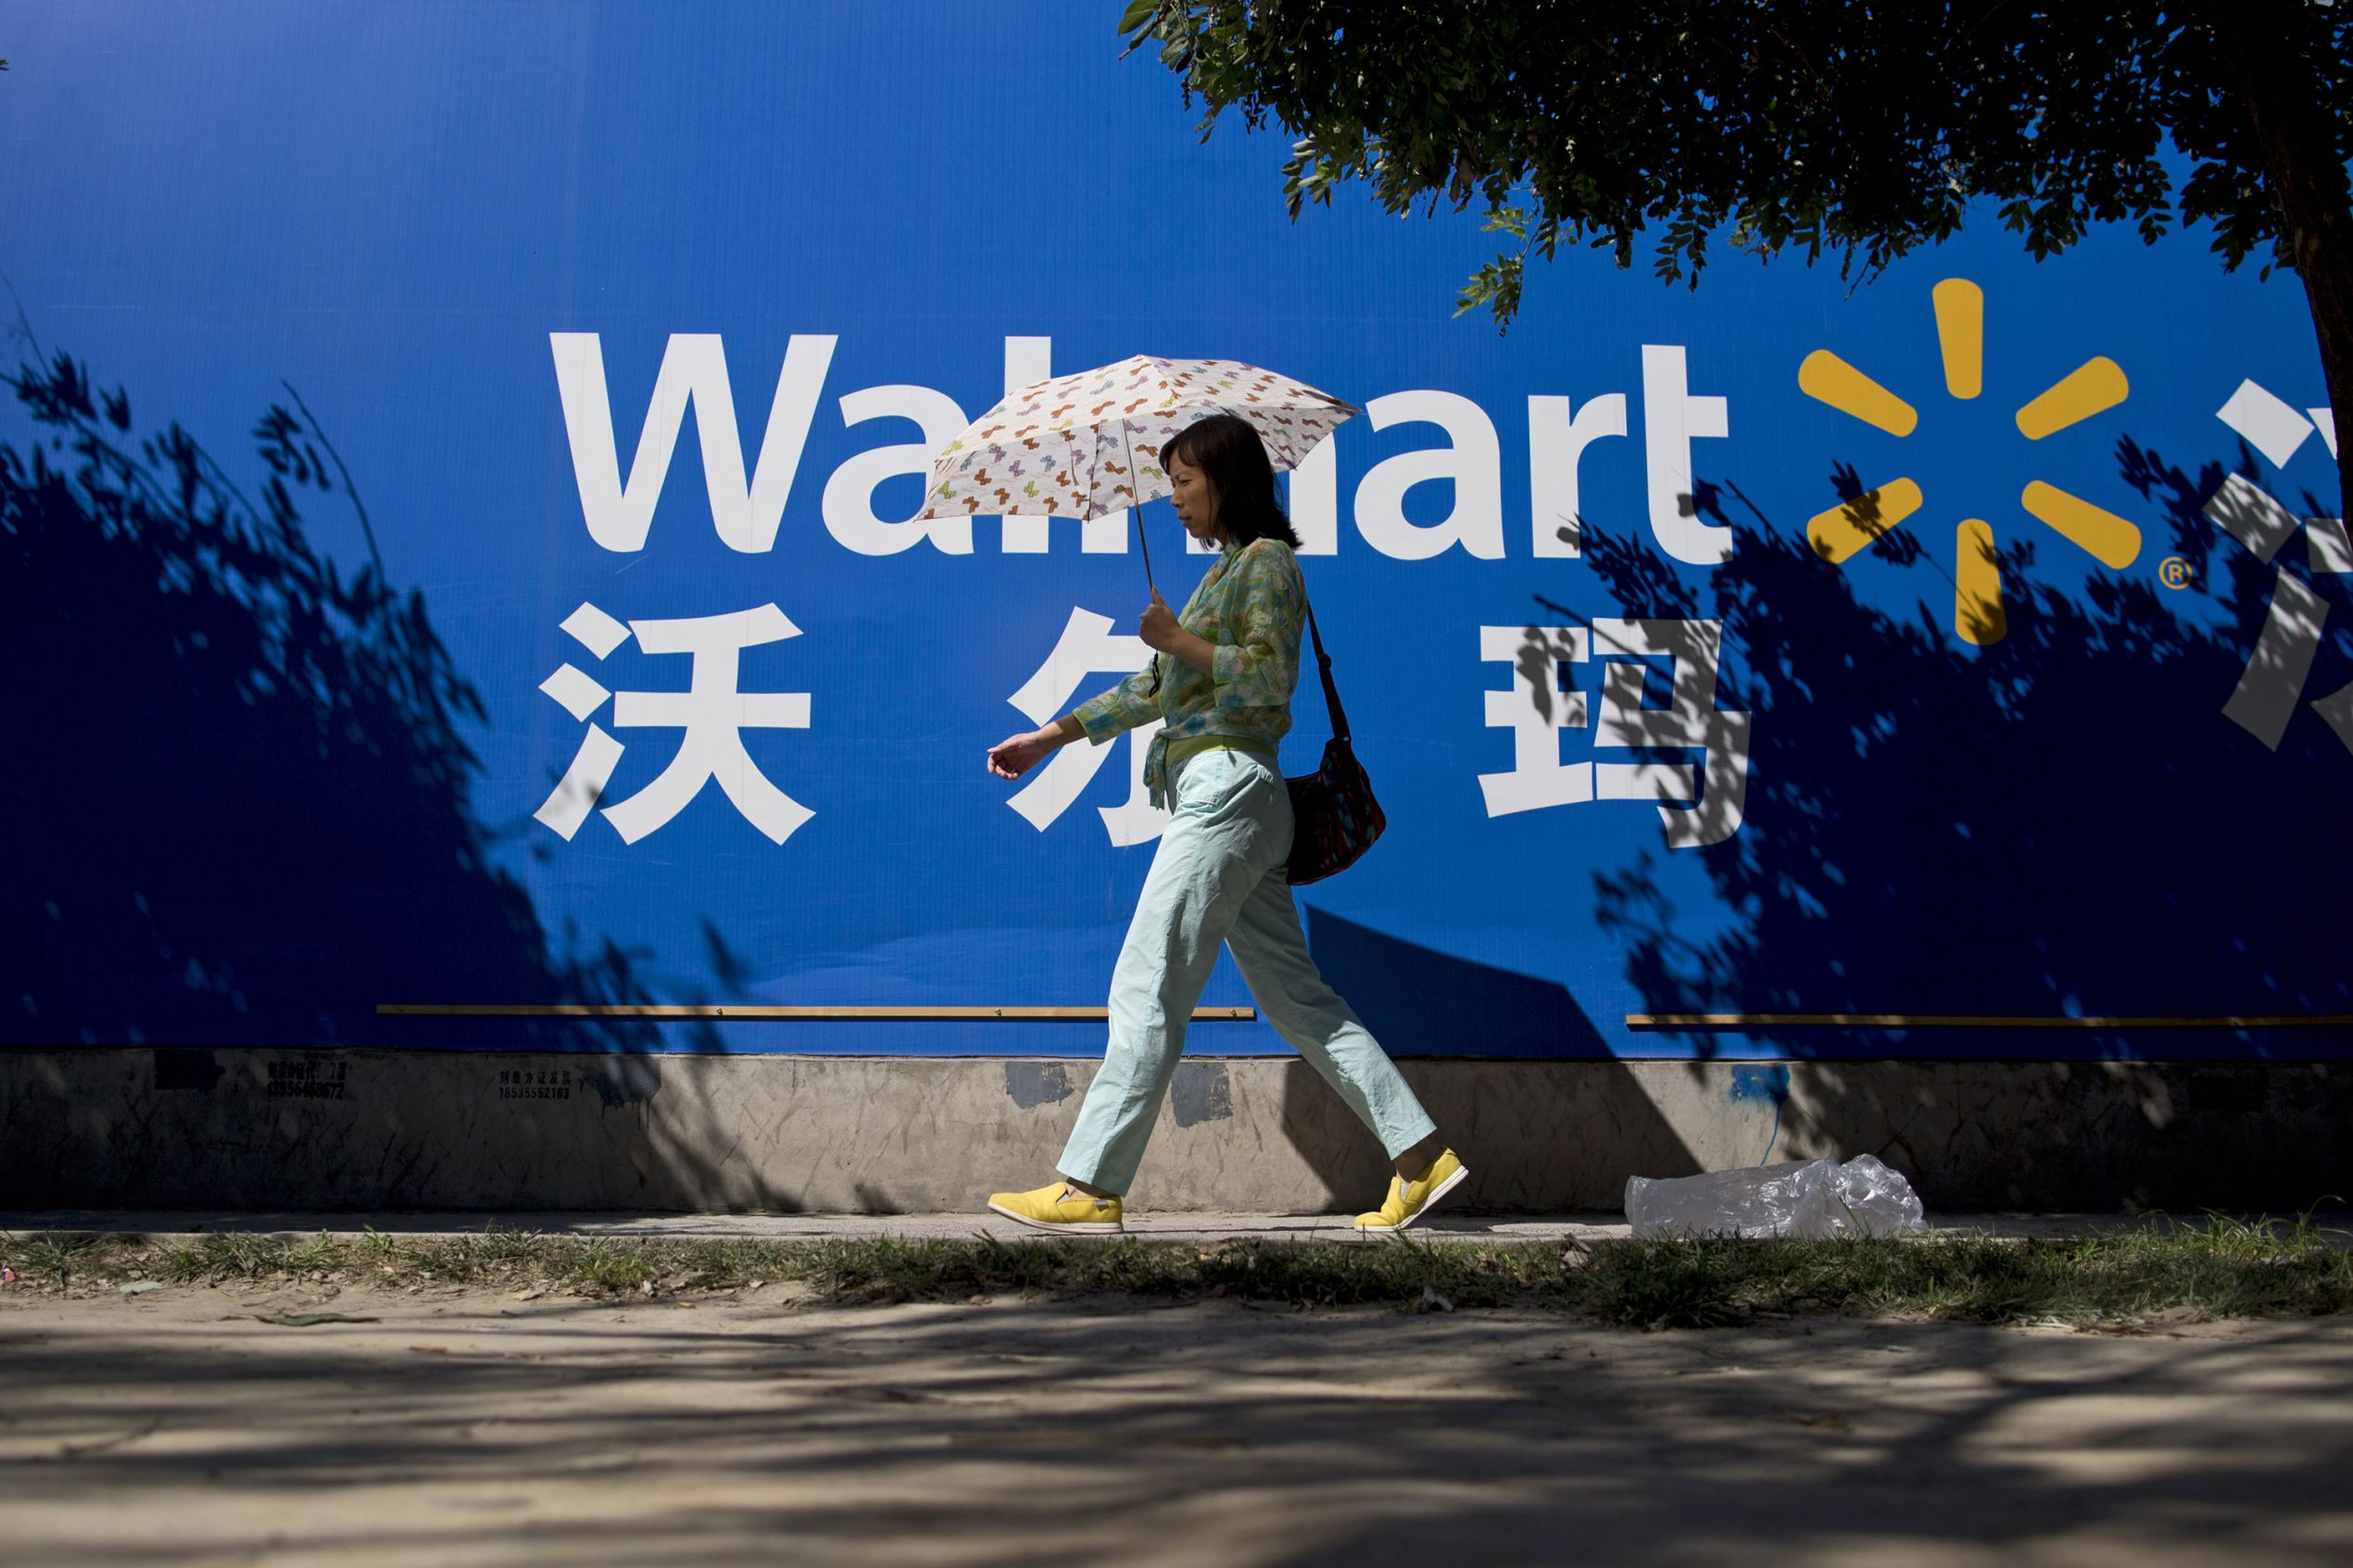 A woman holding an umbrella walks past signage for Wal-Mart Stores Inc. in Beijing, China, on Monday, Sept. 8, 2014. China is scheduled to release figures on consumer and producer prices on Sept. 11. Photographer: Brent Lewin/Bloomberg